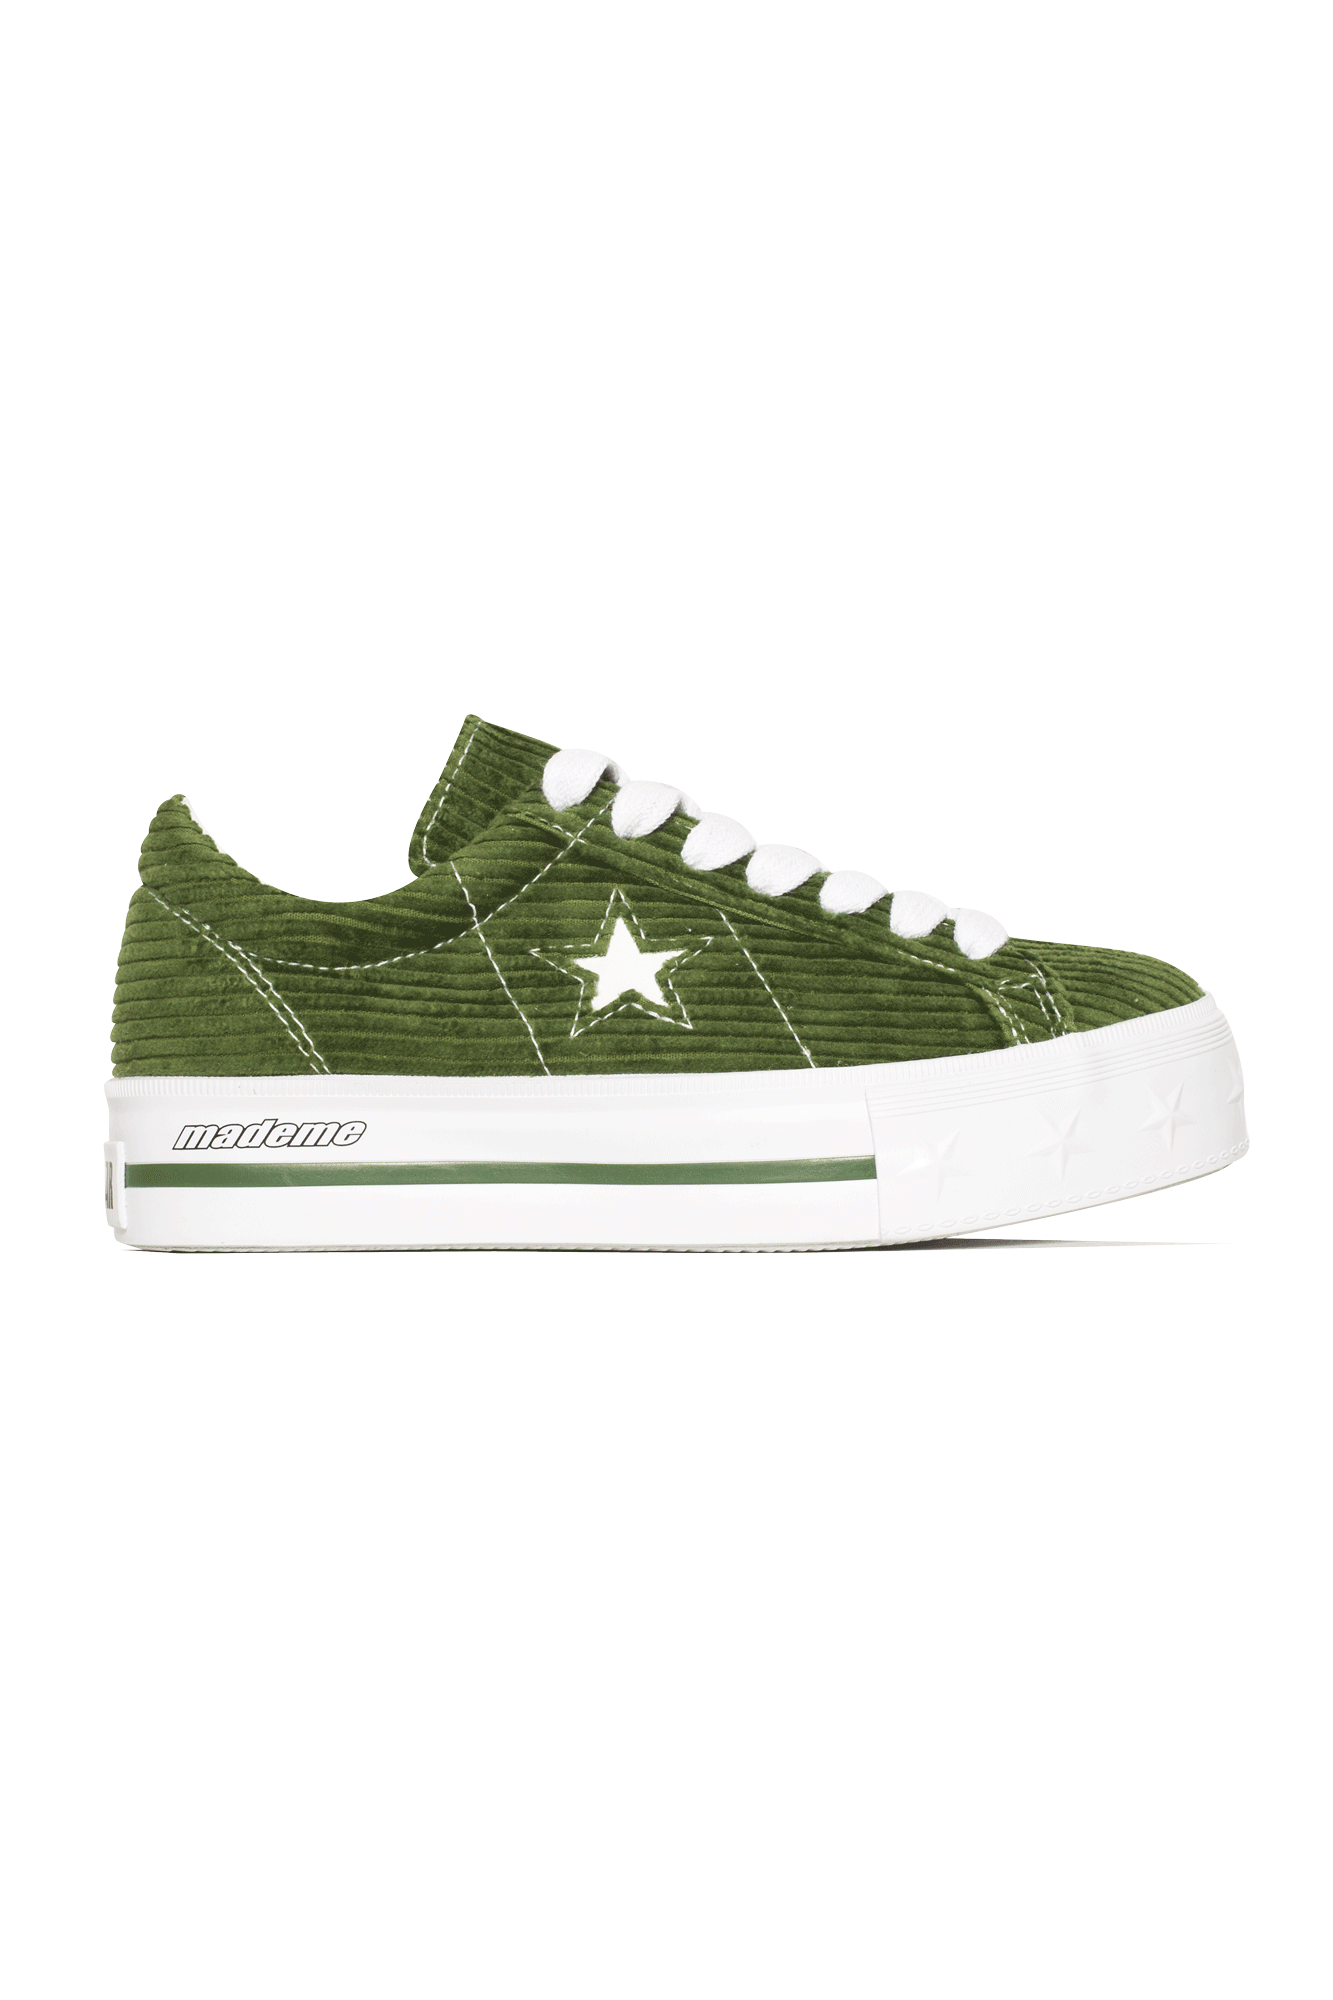 Converse Sneakers One Star Platform Ox X MadeMe Green 561392C#000#C0013#5 - One Block Down